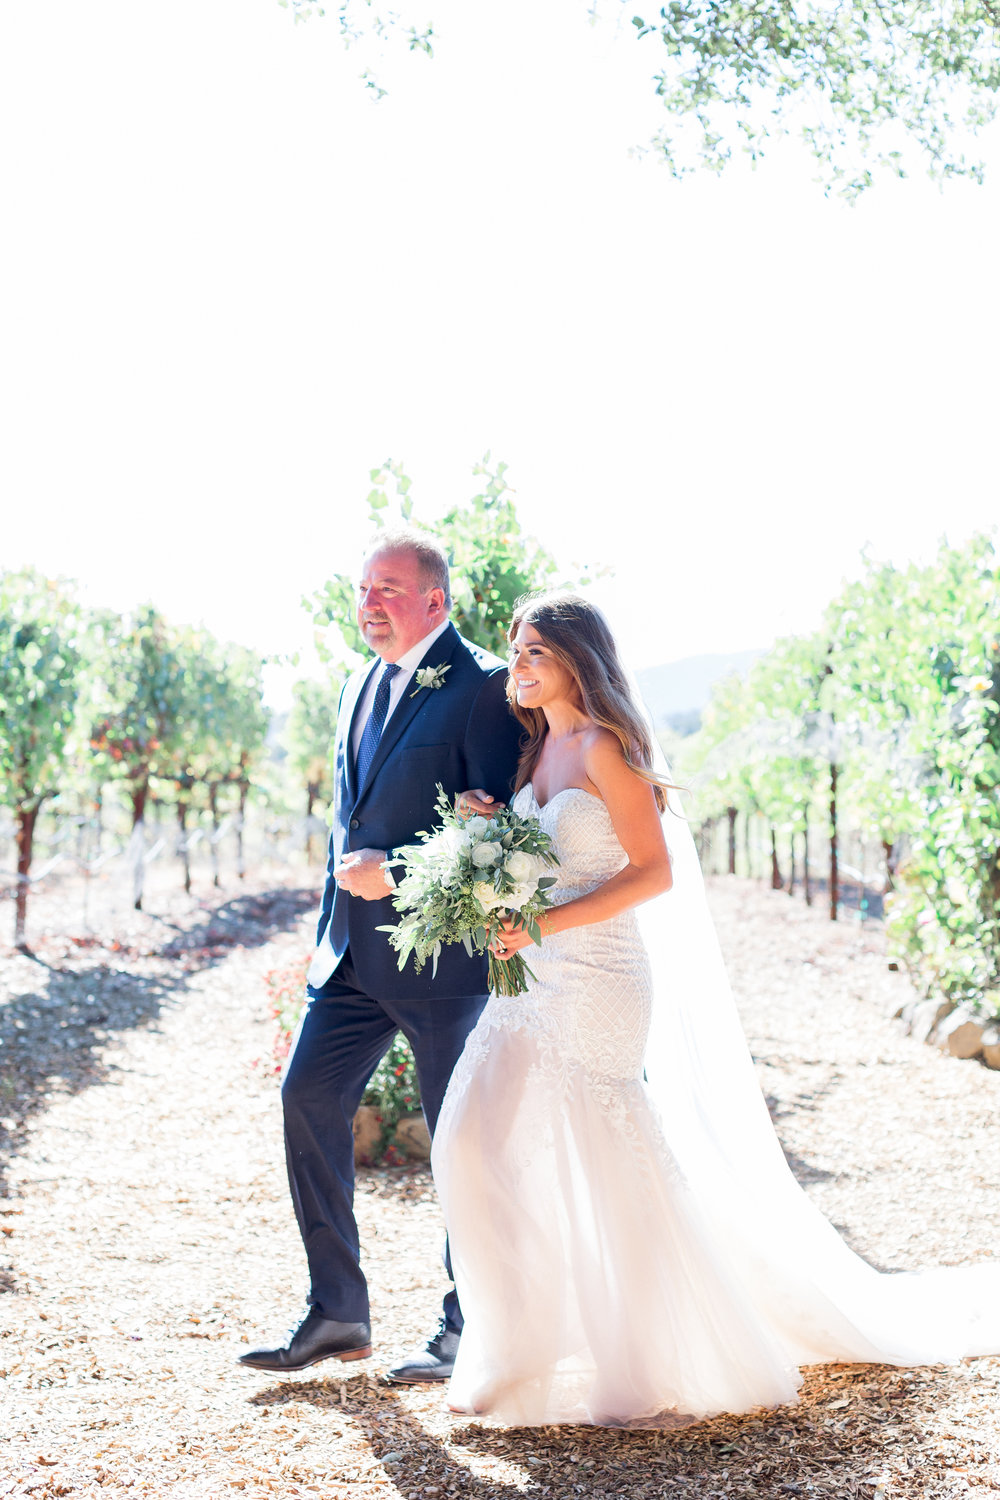 Napa-wedding-photographer-captures-destination-wedding0in-vineyards138 of 262).jpg